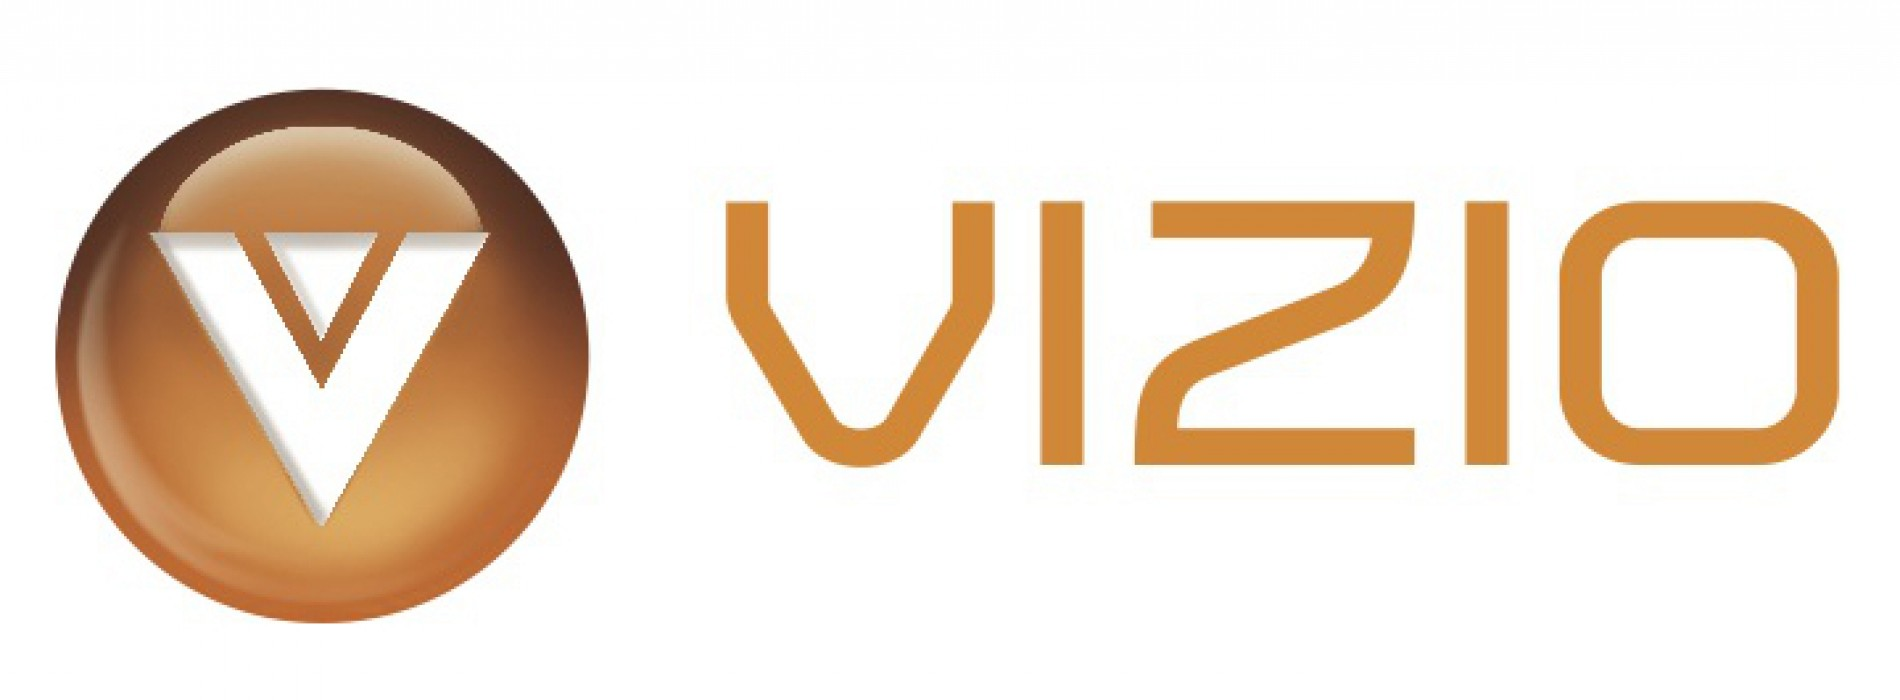 Vizio returns to Android smartphones with pair of Chinese models